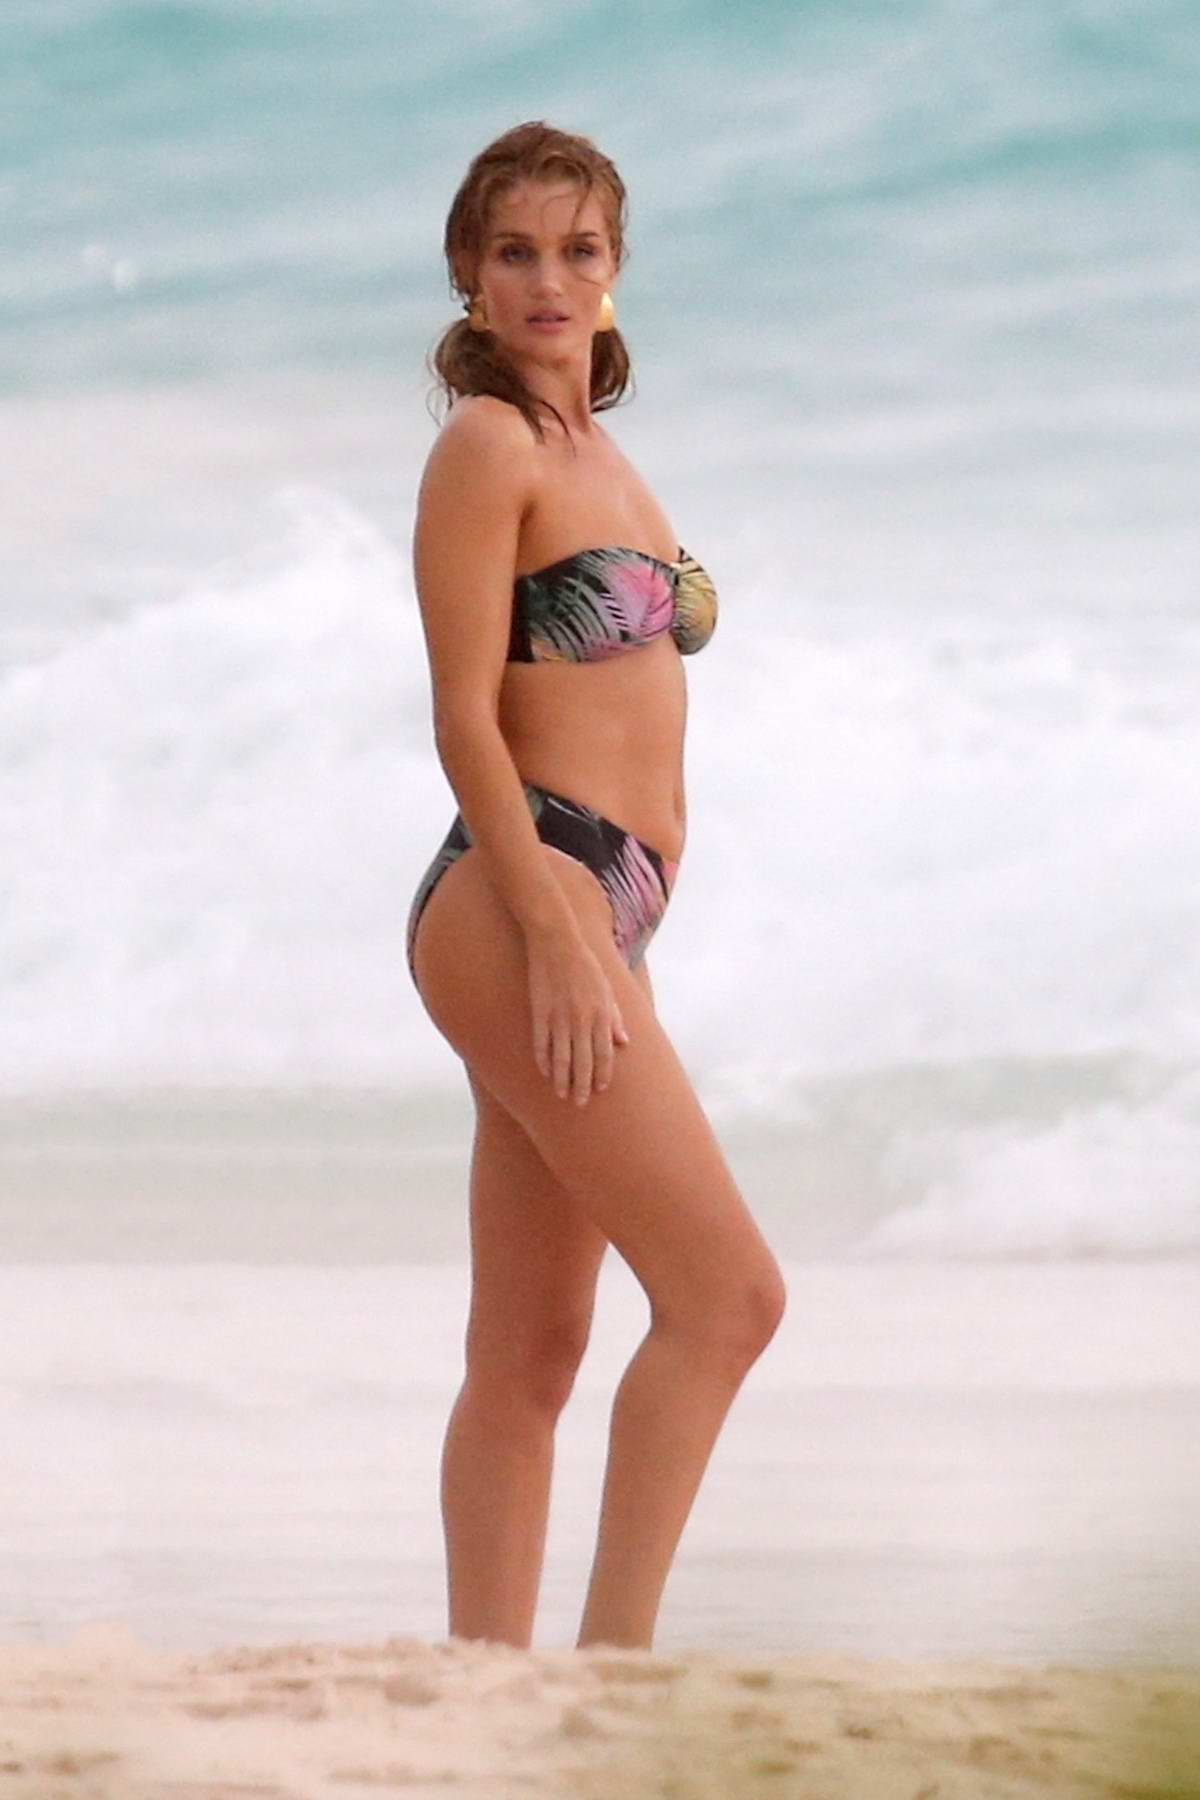 Rosie Huntington-Whiteley is seen wearing assorted bikinis during a photoshoot on the beach in The Bahamas - Set 01